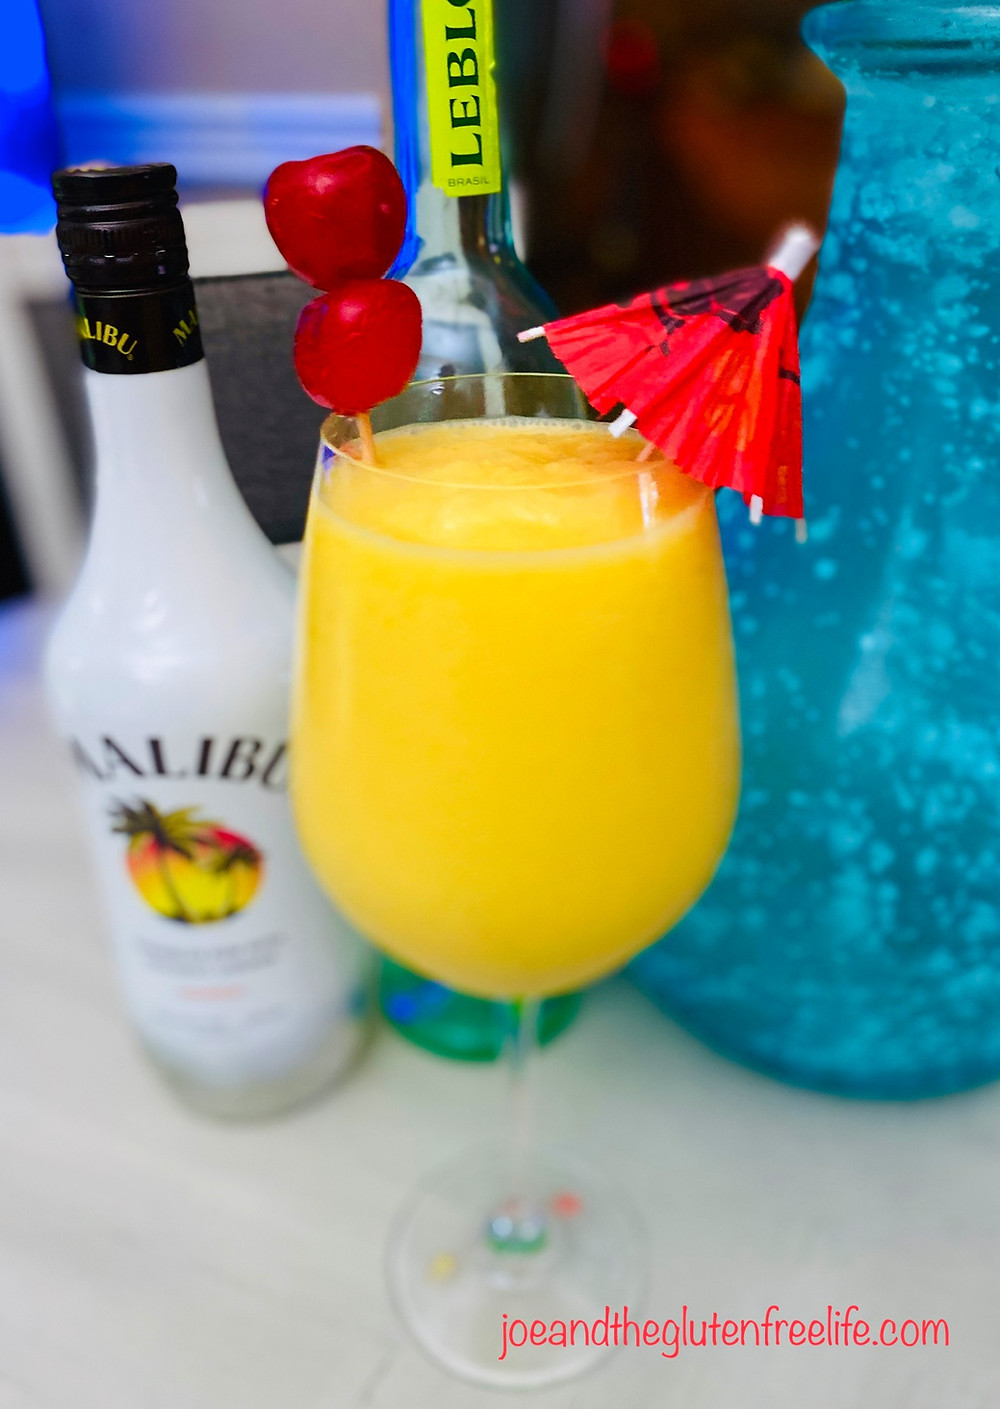 A new twist on the traditional Piña Colada cocktail!